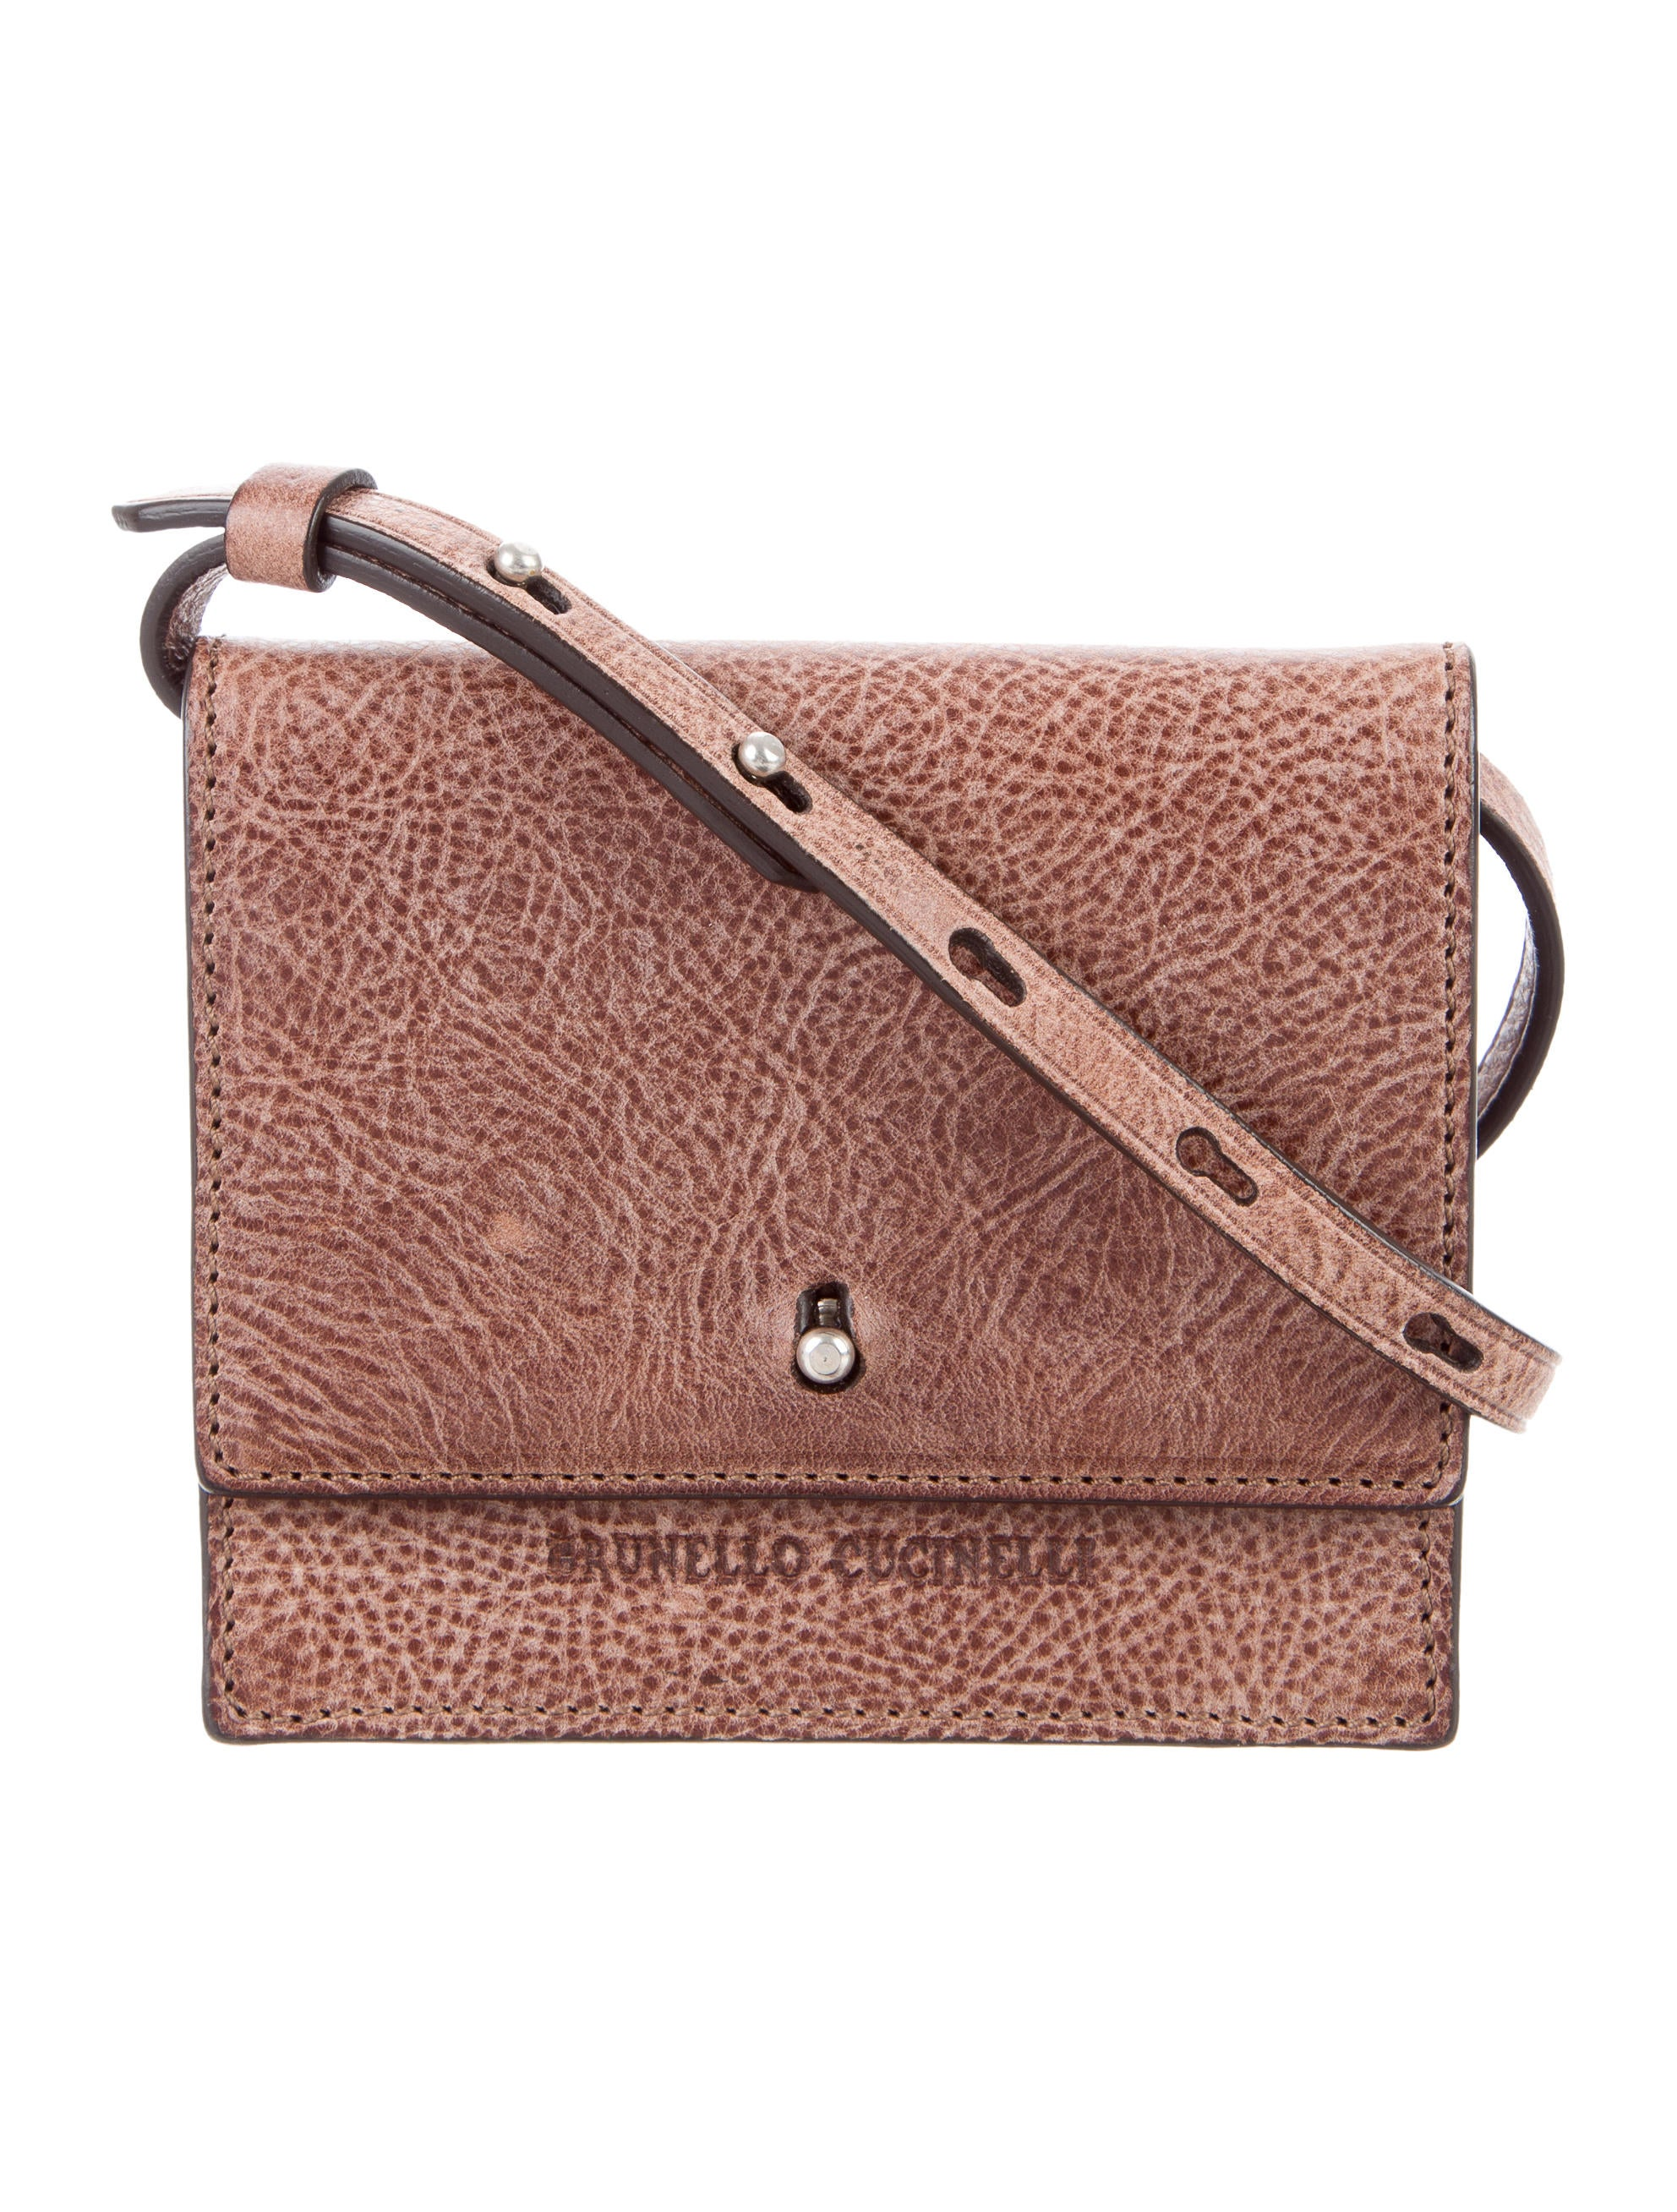 Brunello Cucinelli Mini Crossbody Bag Handbags